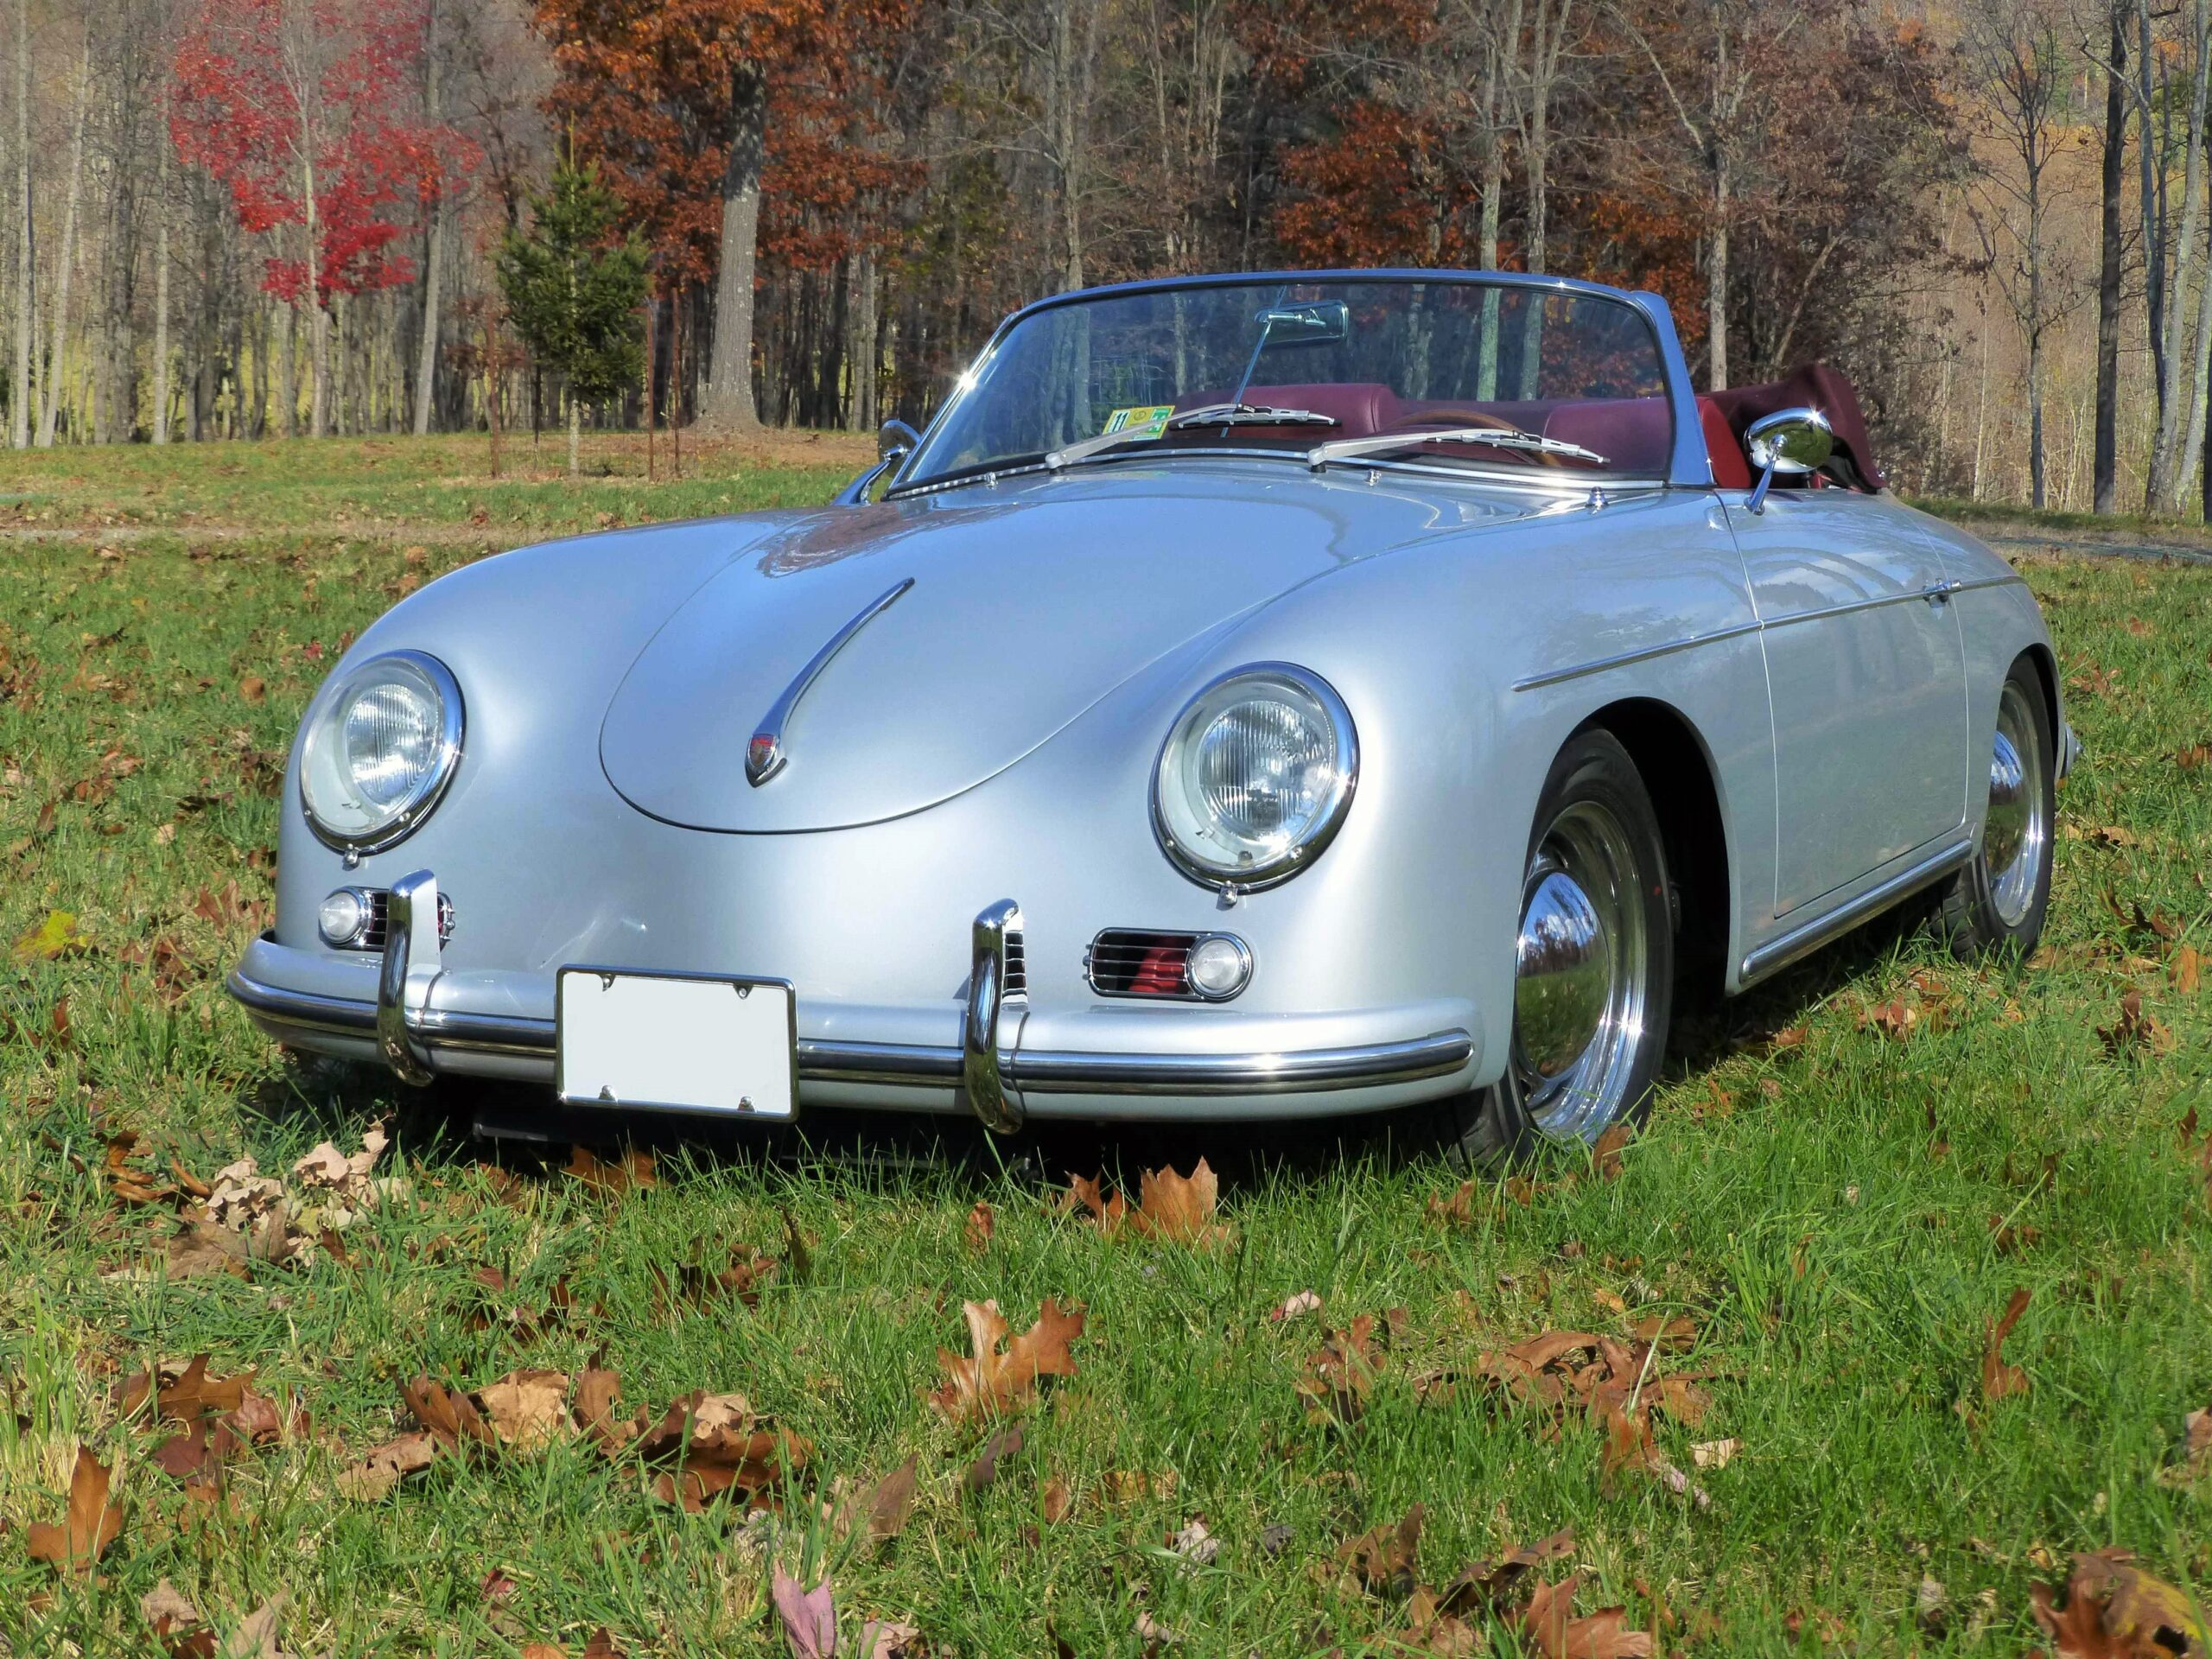 Silver 356 Roadster with red leather interior. Top is down and the vehicle sits in a grassy field